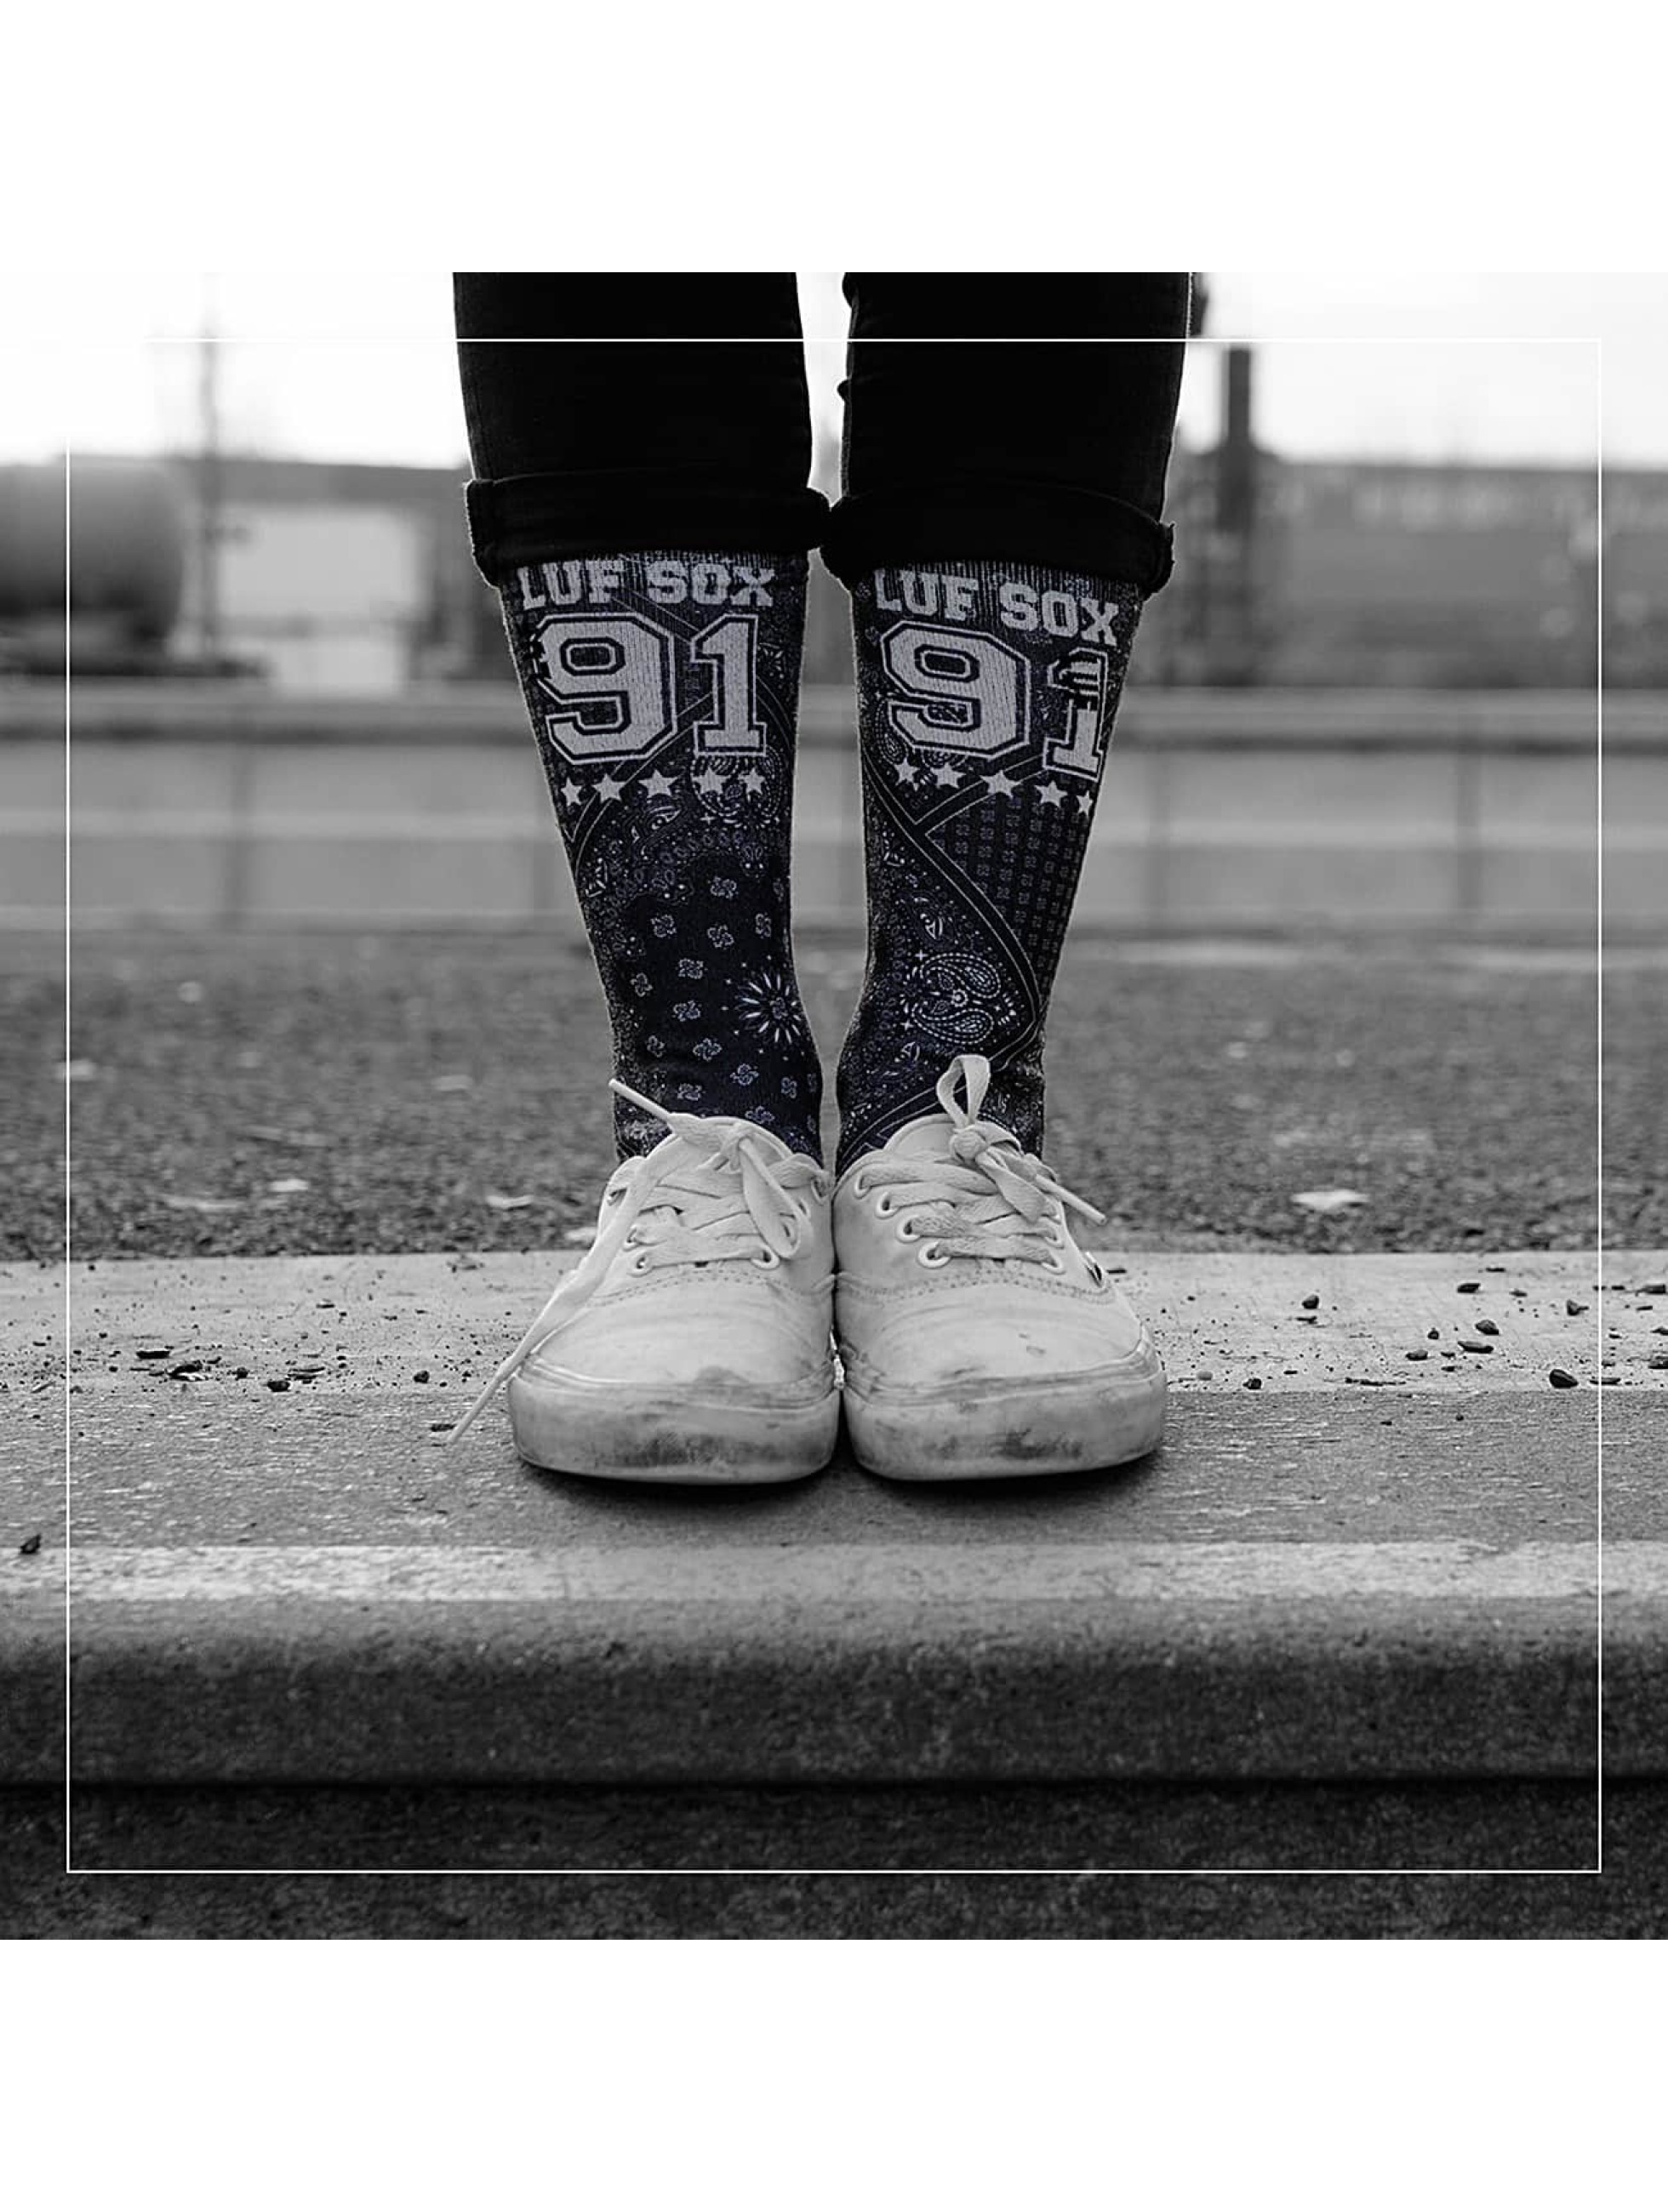 LUF SOX Socks Bandana black